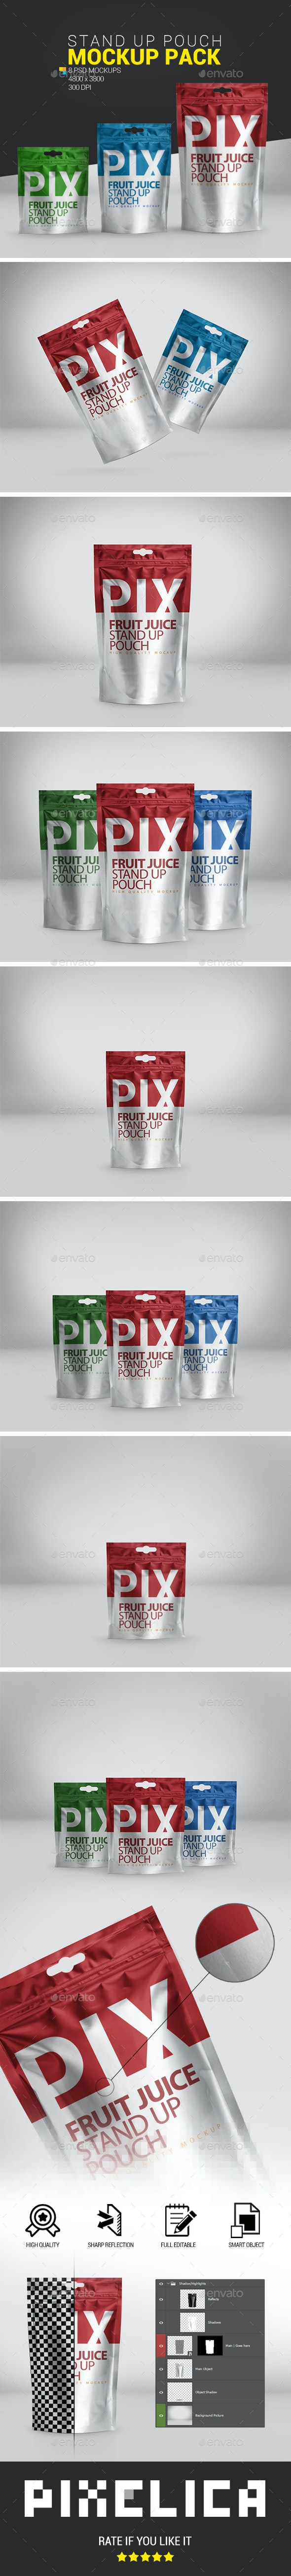 Foil Pouch Bag Mockup Pack - Food and Drink Packaging